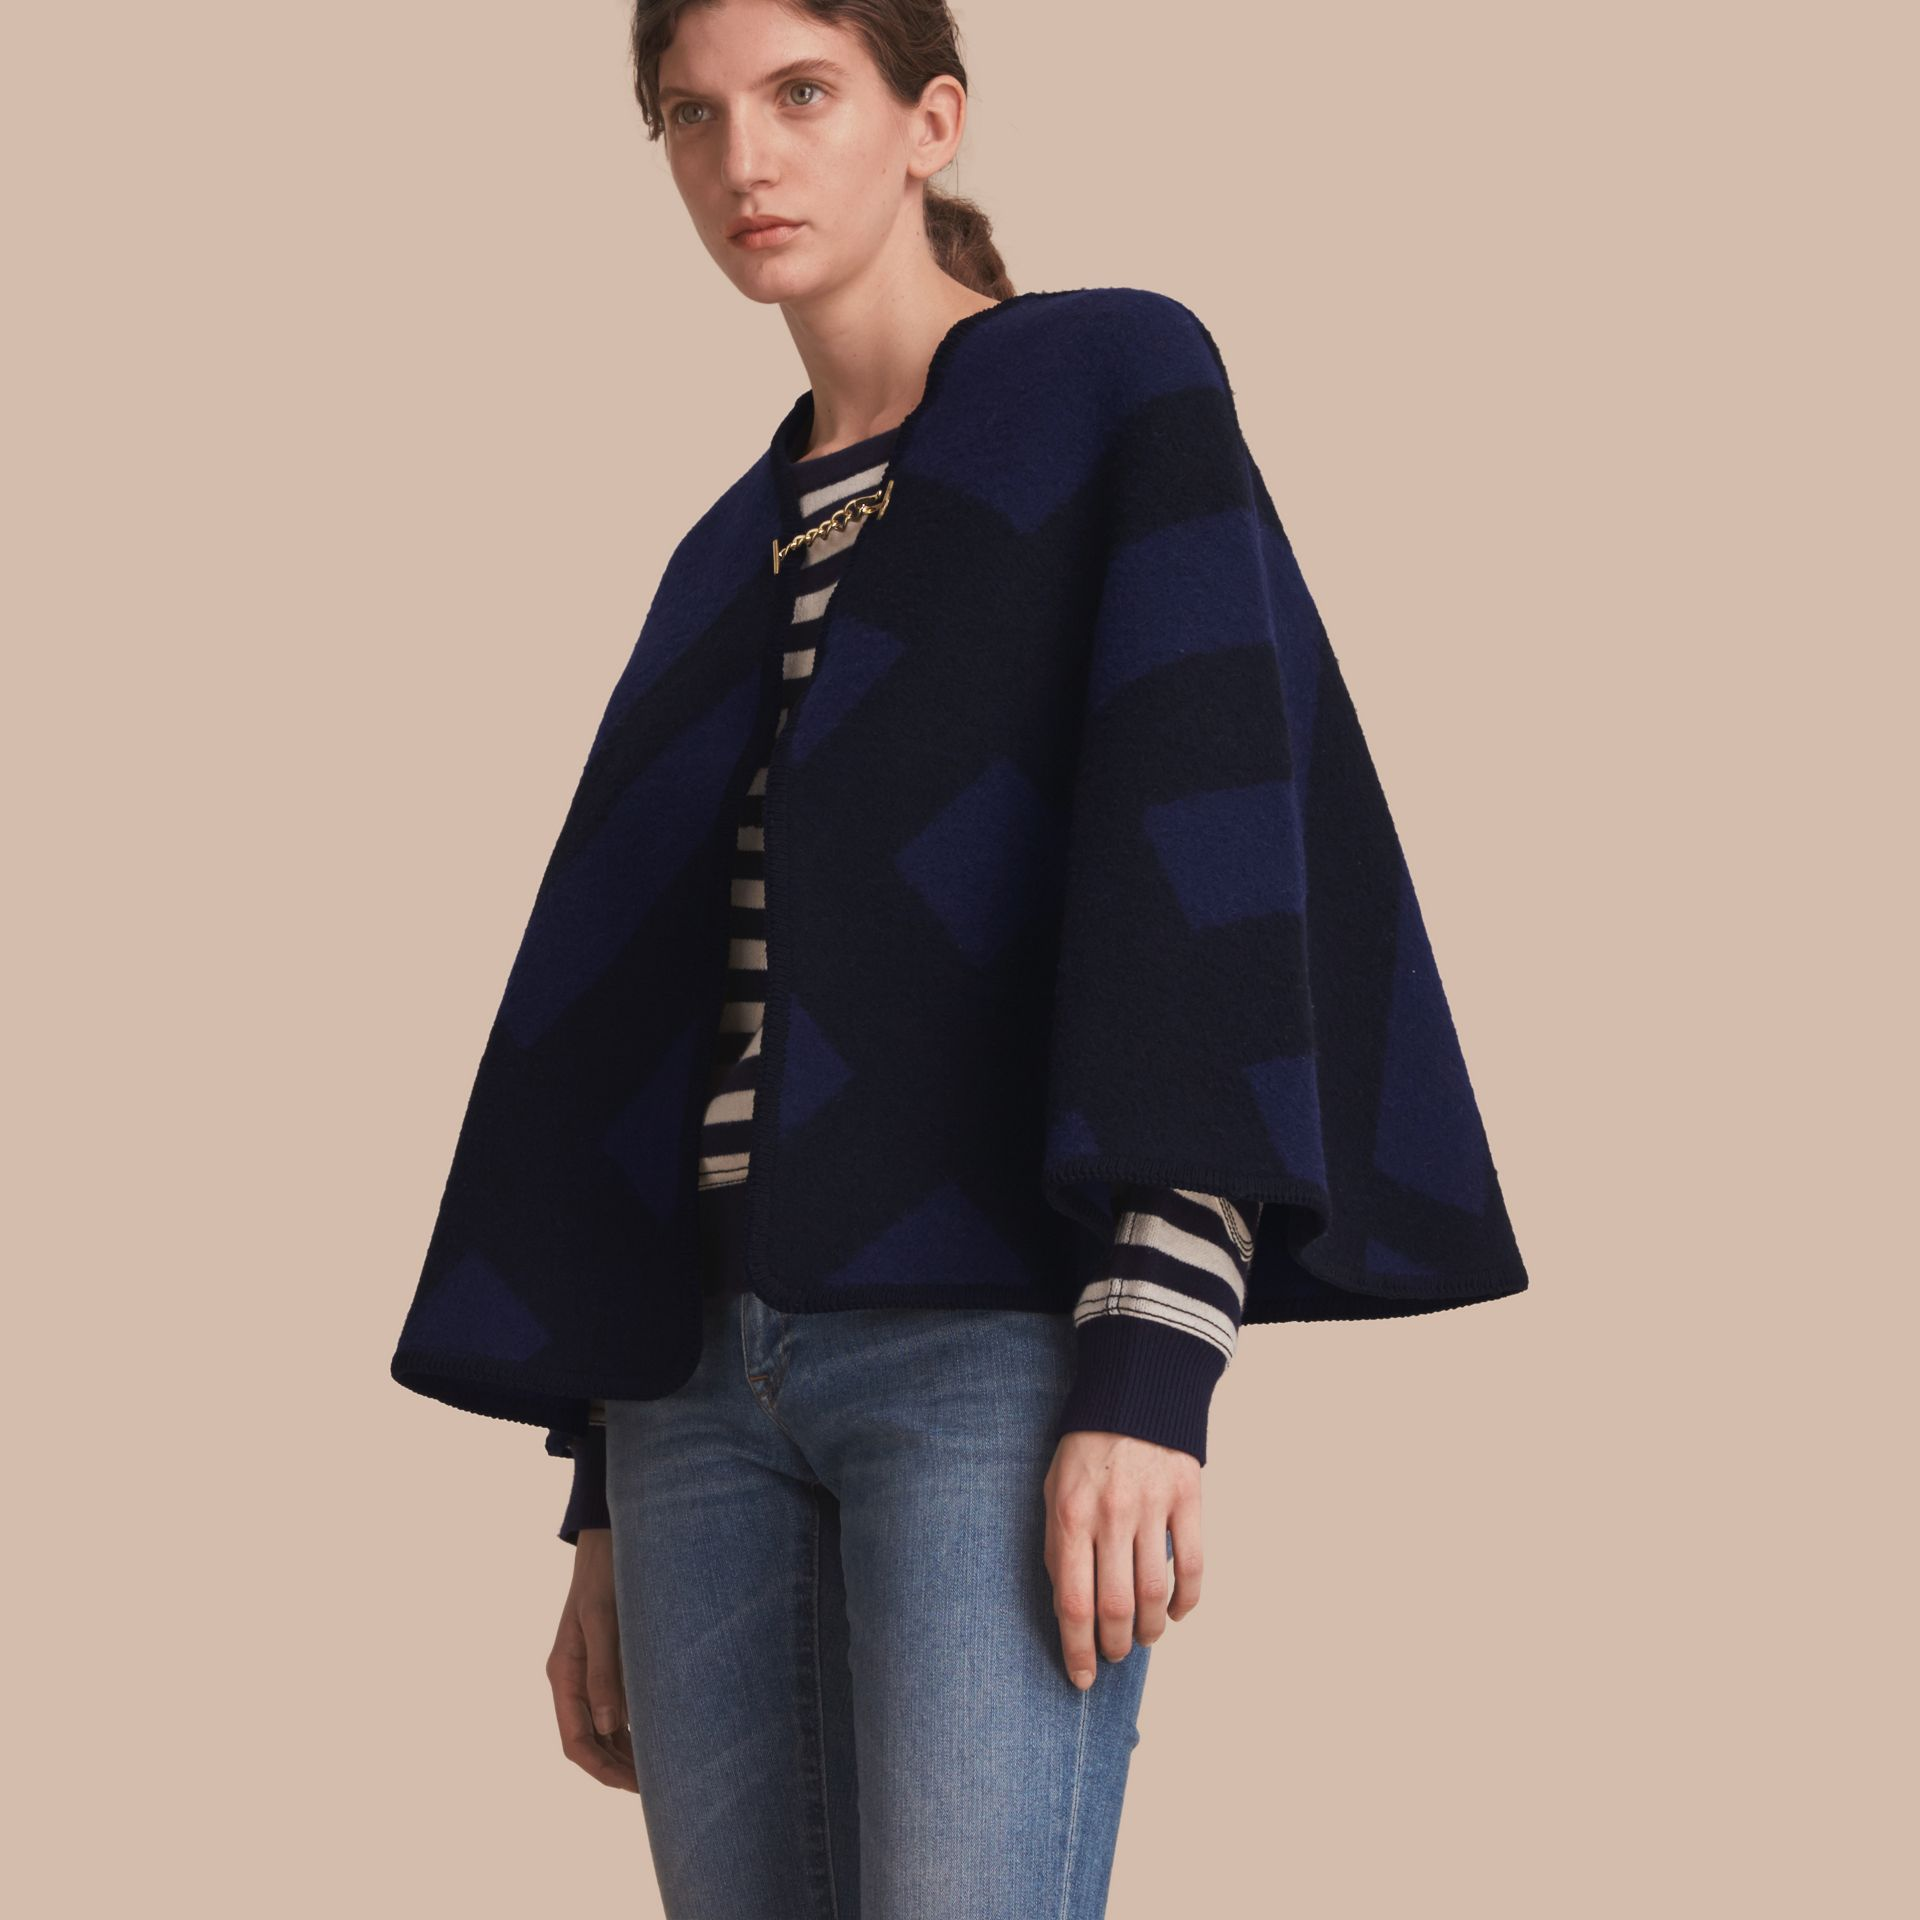 Check Wool Cashmere Blanket Cape in Navy - Women | Burberry - gallery image 1